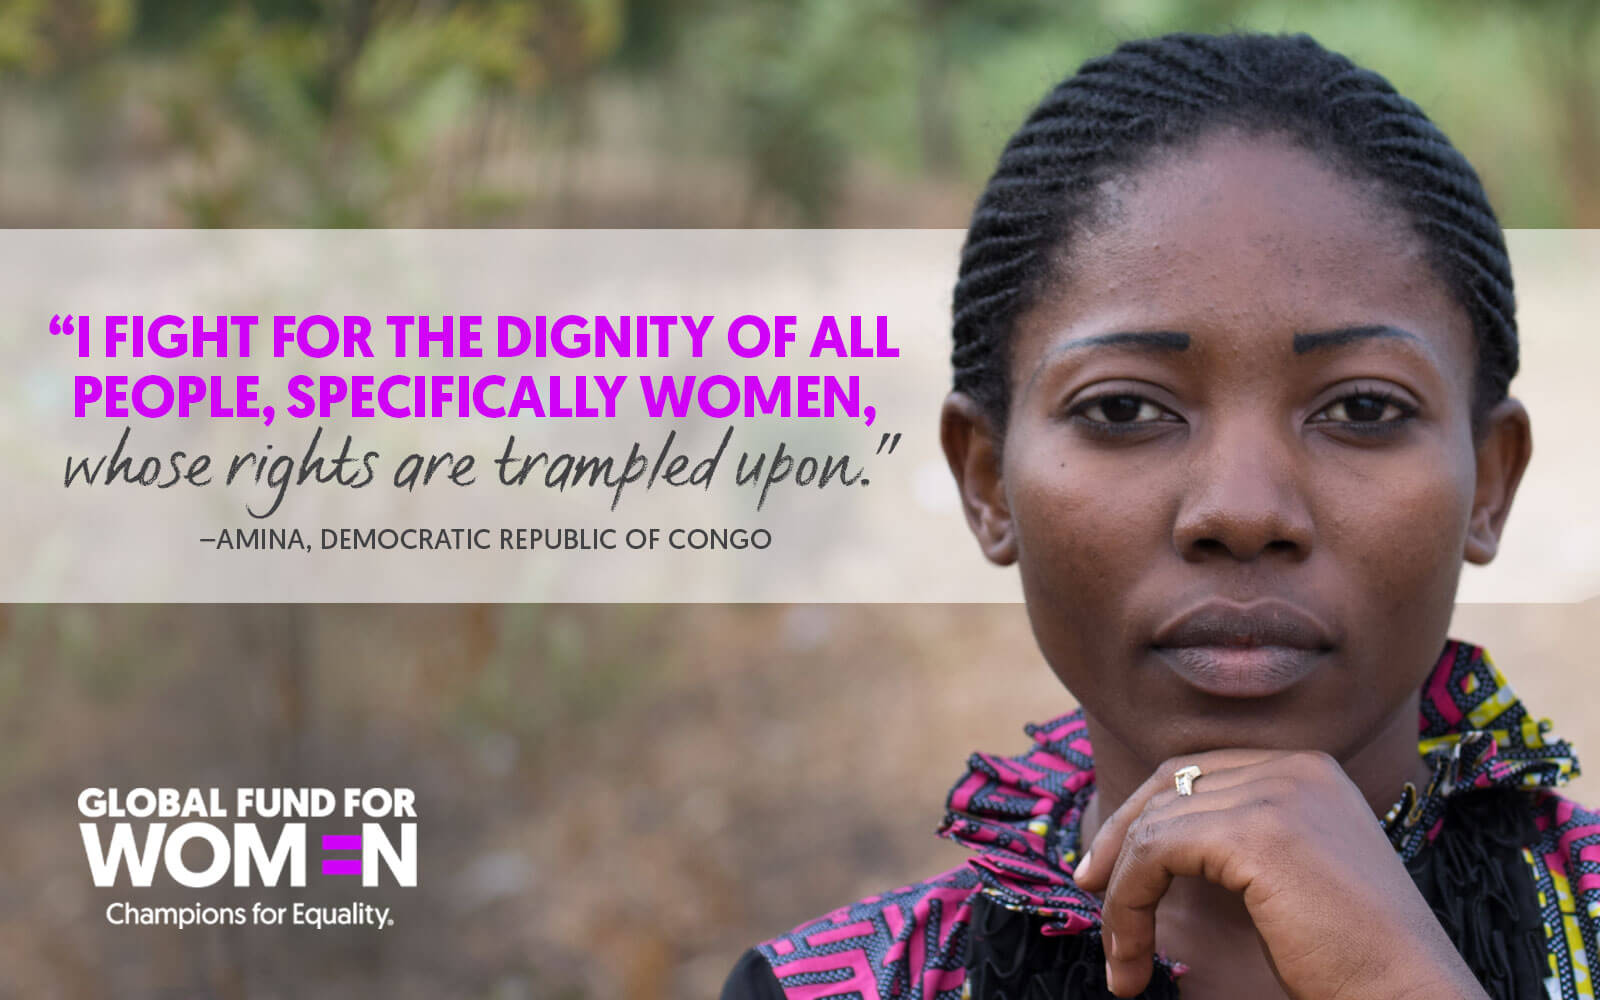 I fight for the dignity of all people, specifically women, whose rights are trampled upon.